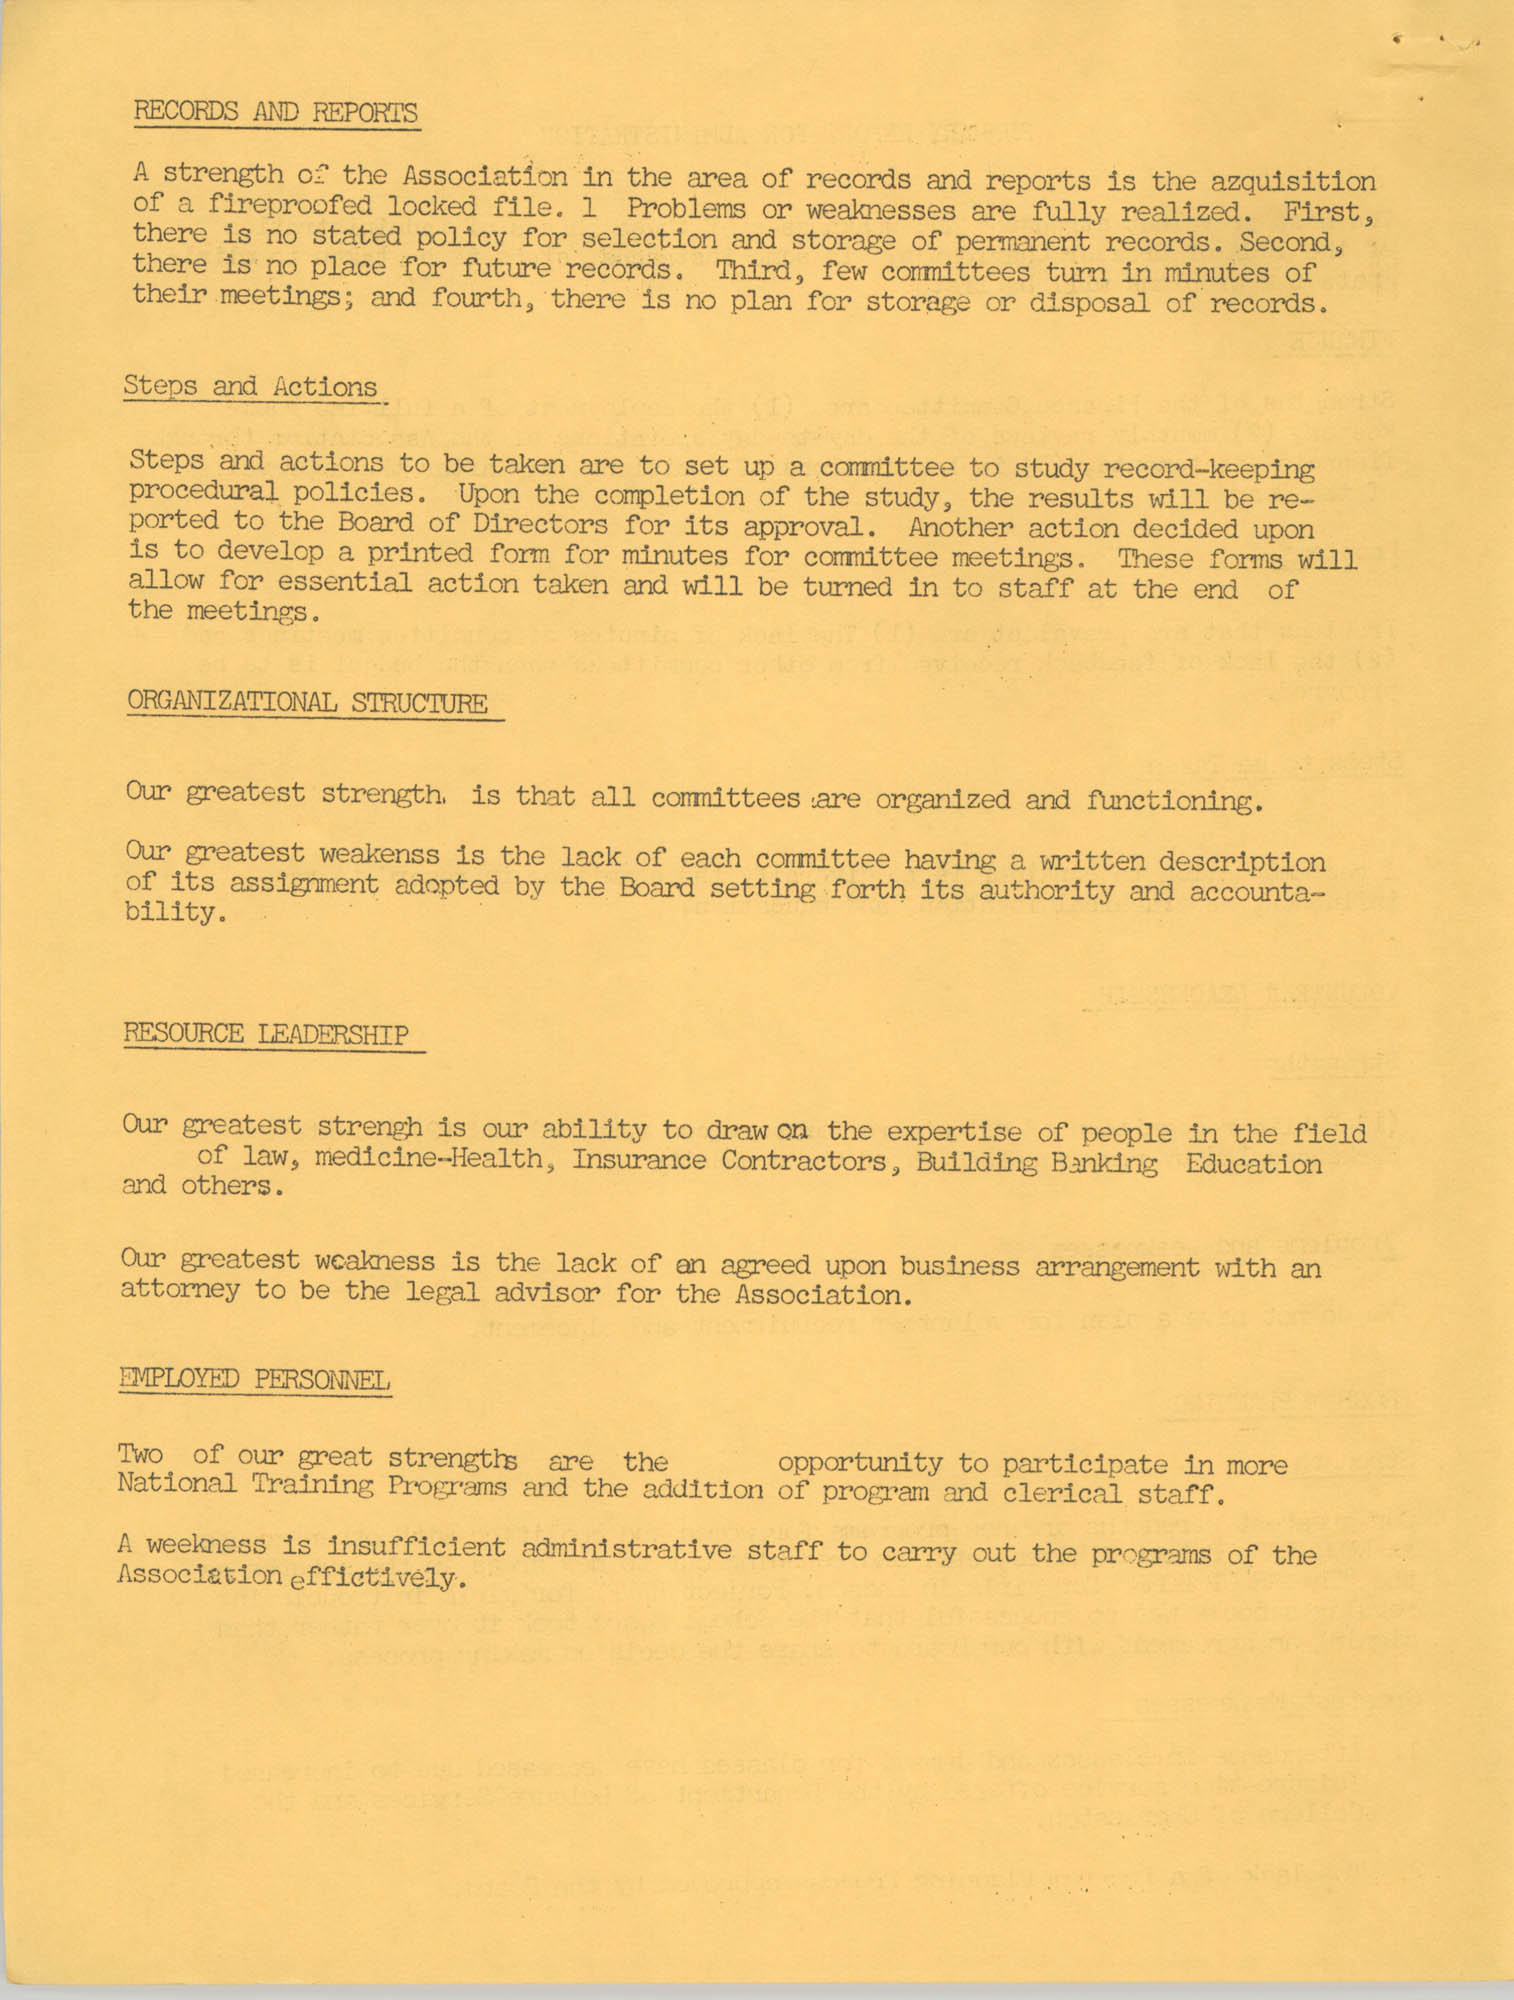 Y.W.C.A. of Greater Charleston Summary Report for Administration, Page 2